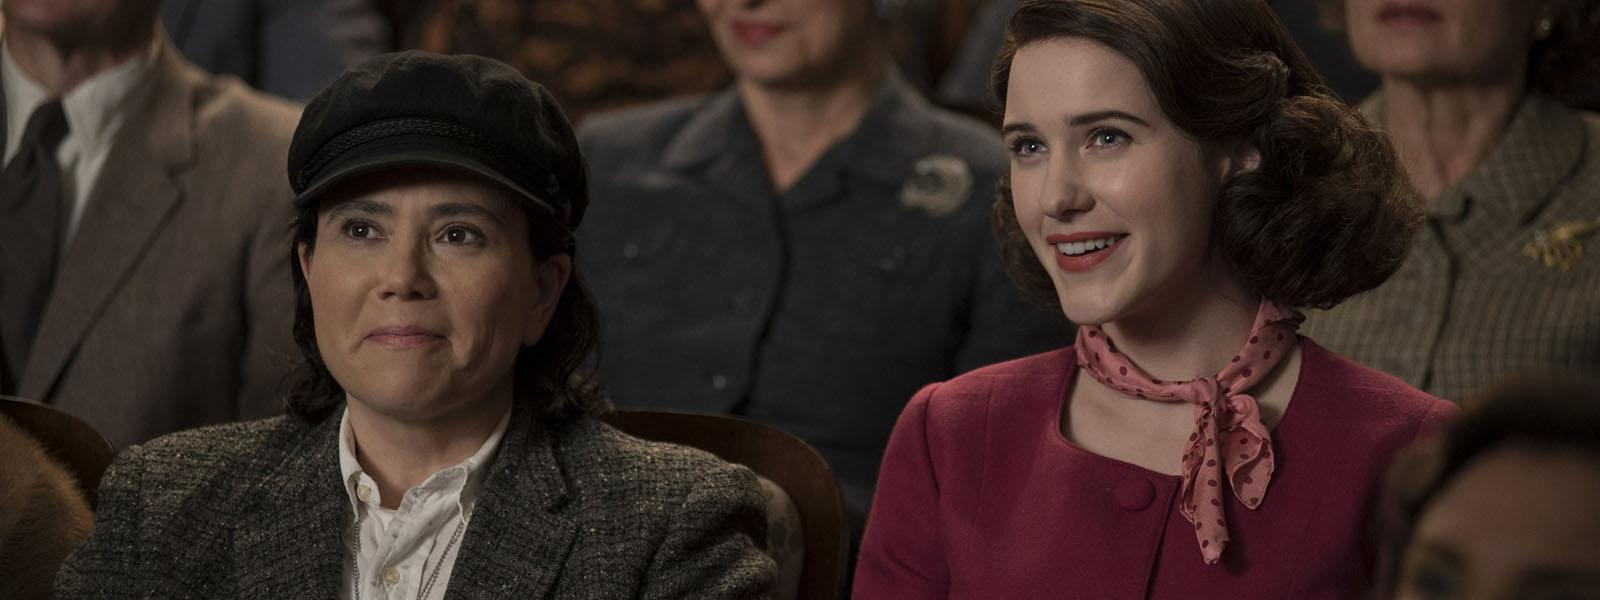 """See alumni work from the schools of Drama, Design & Production and Music in """"The Marvelous Mrs. Maisel"""" on Amazon Prime"""